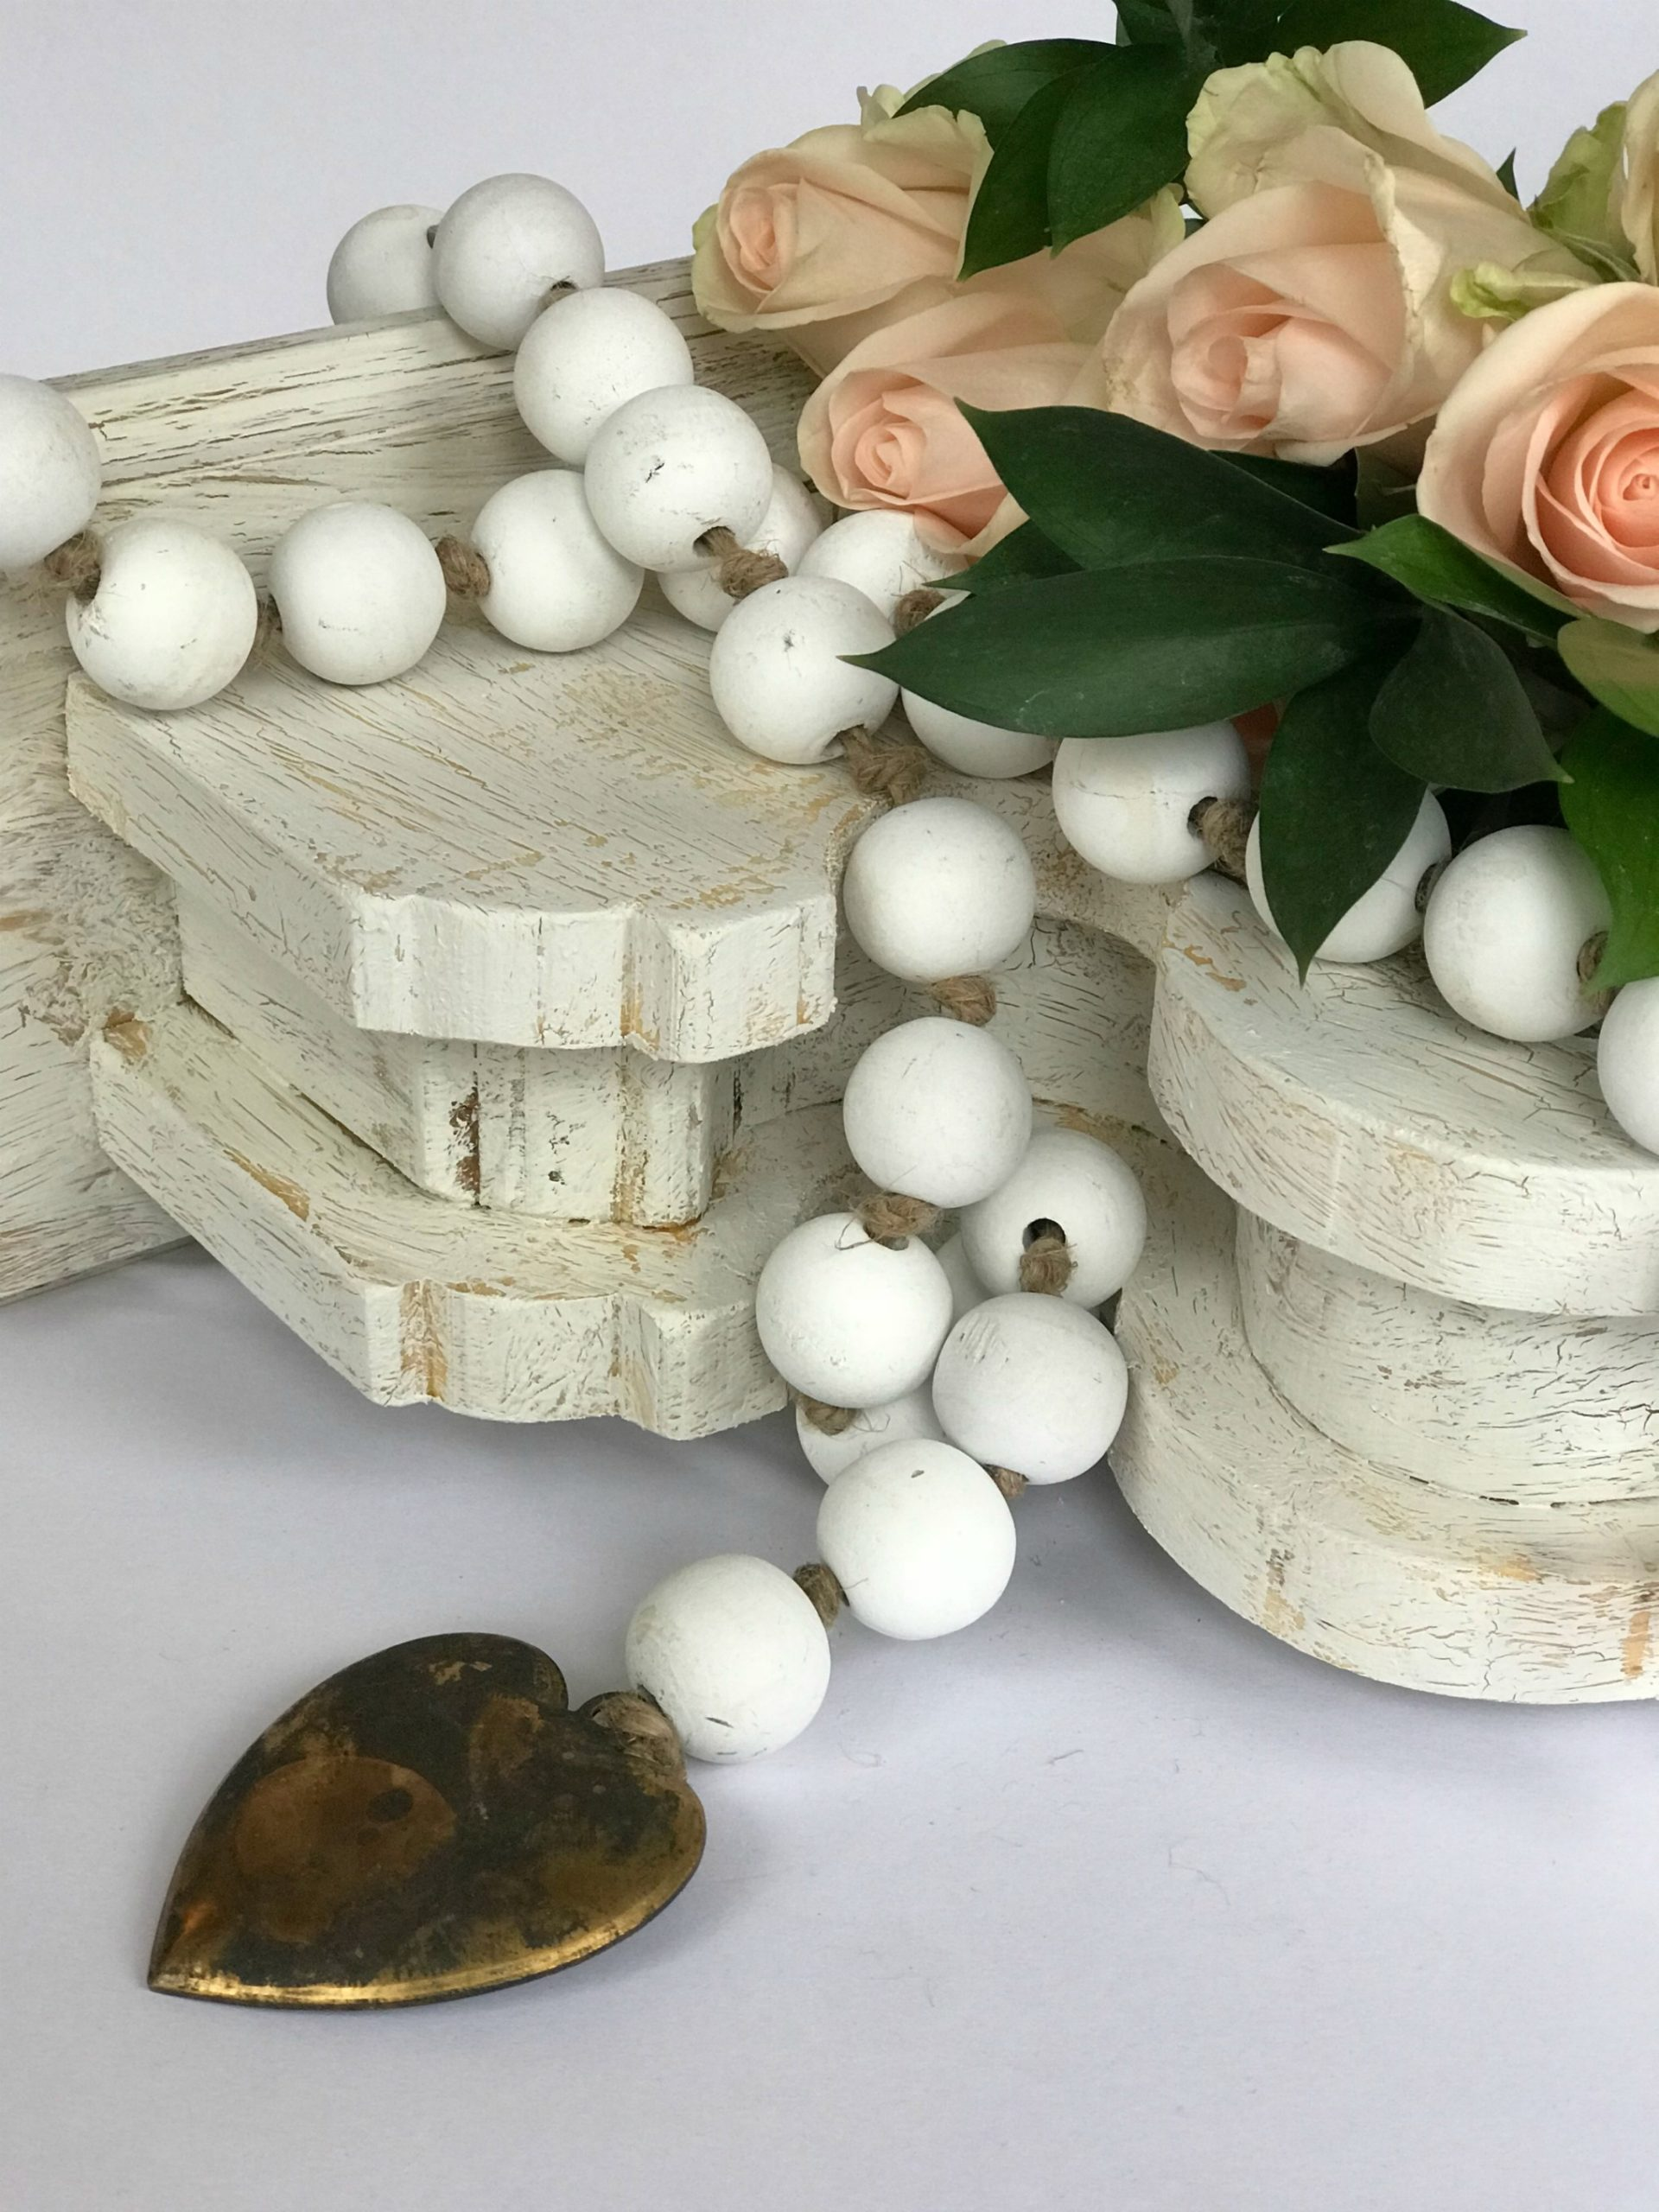 How to Make White Wood Bead Garland